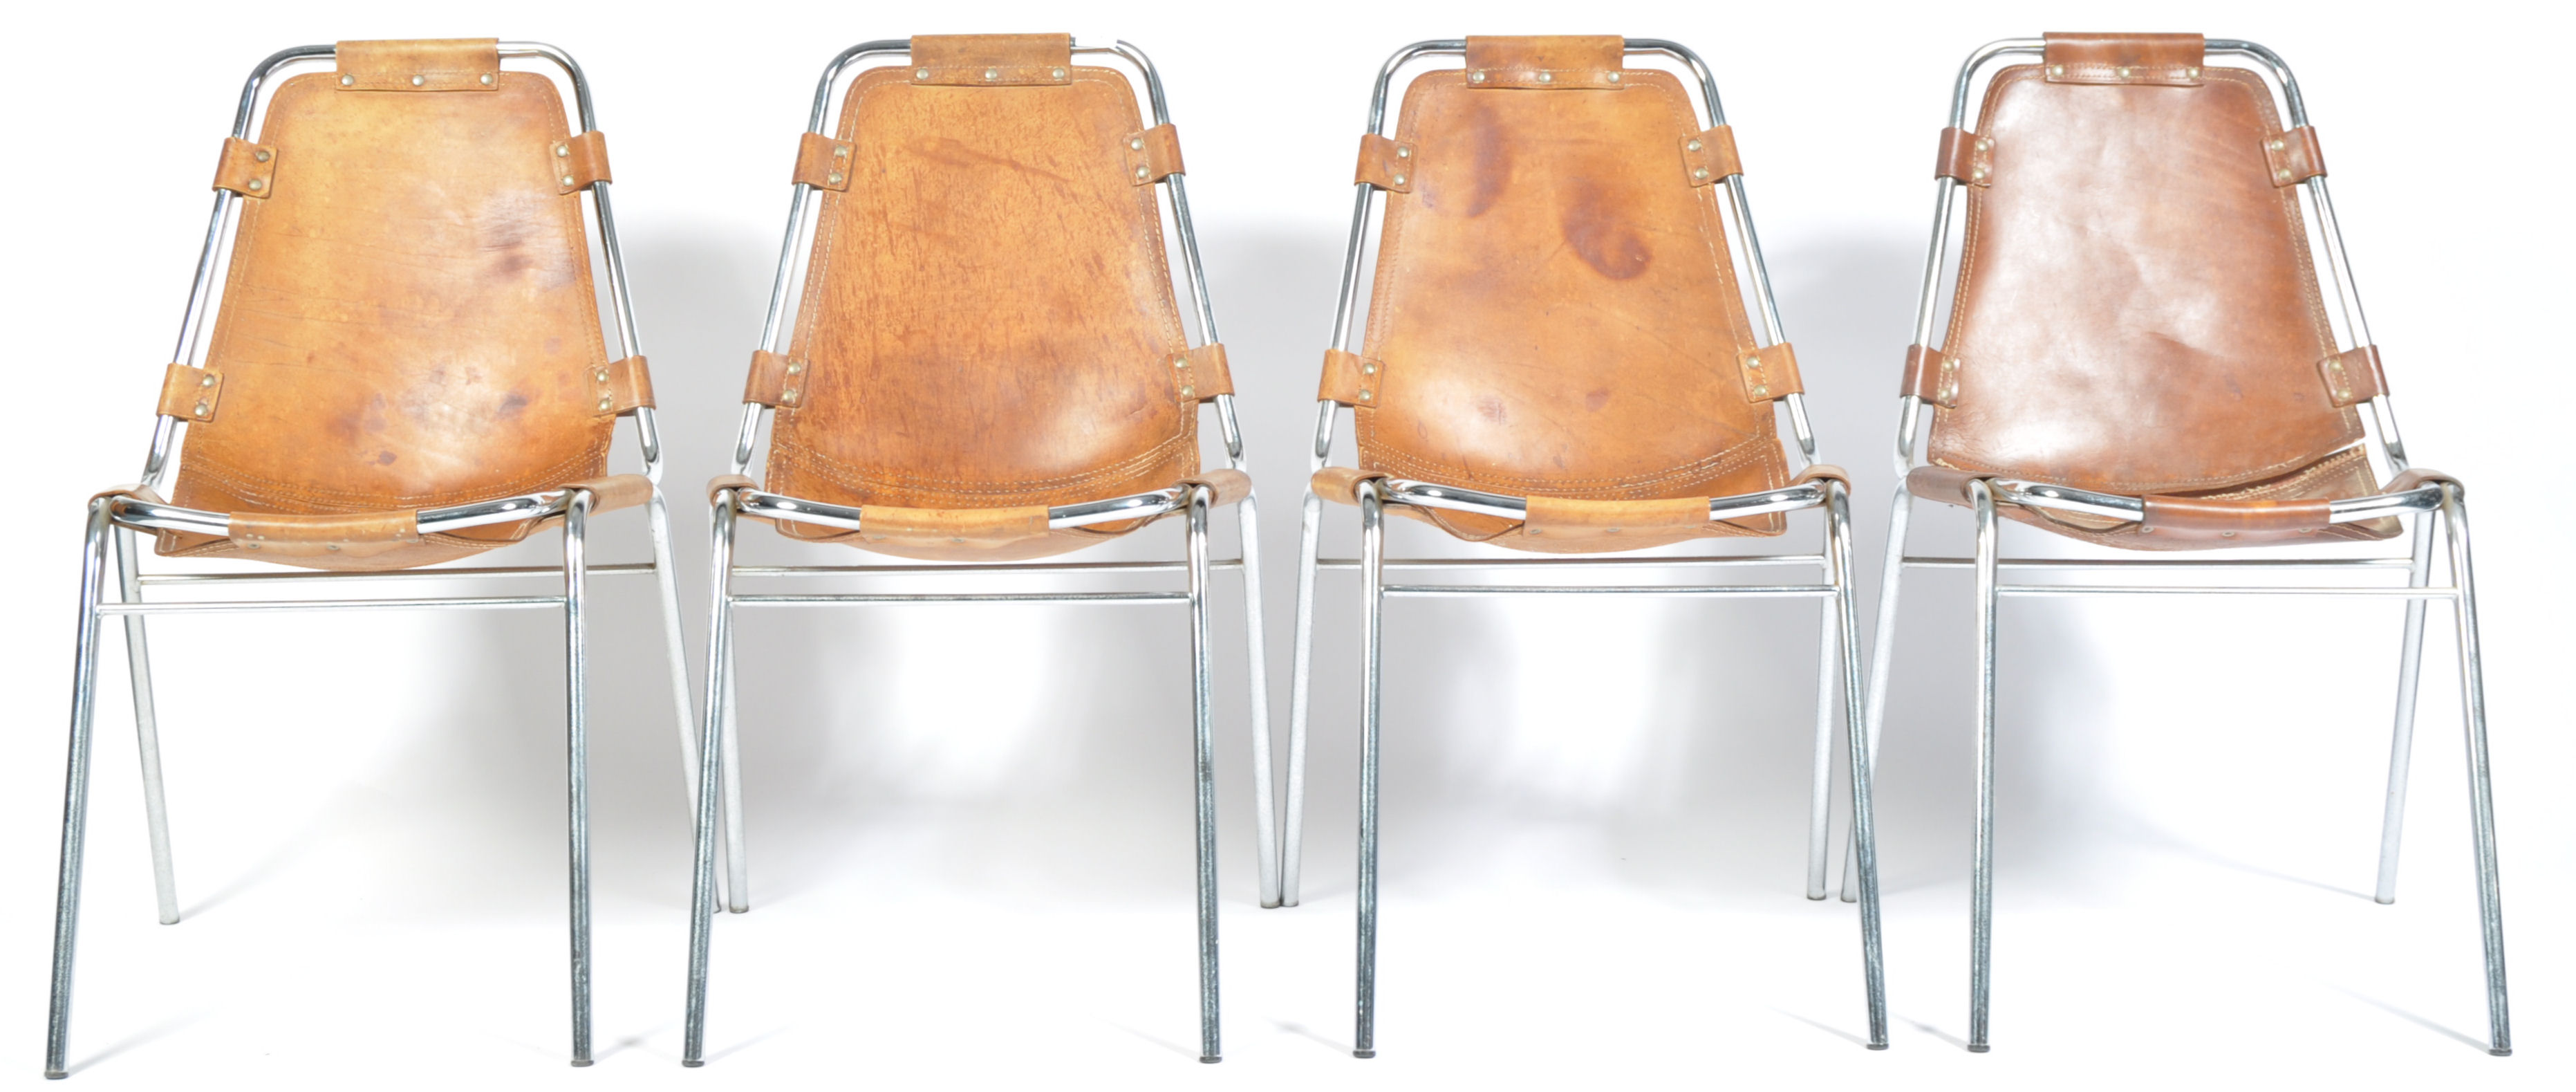 Lot 1 - CASSINA LES ARC ORIGINAL 1970'S RETRO CHAIR BY CHARLOTTE PERRIAND